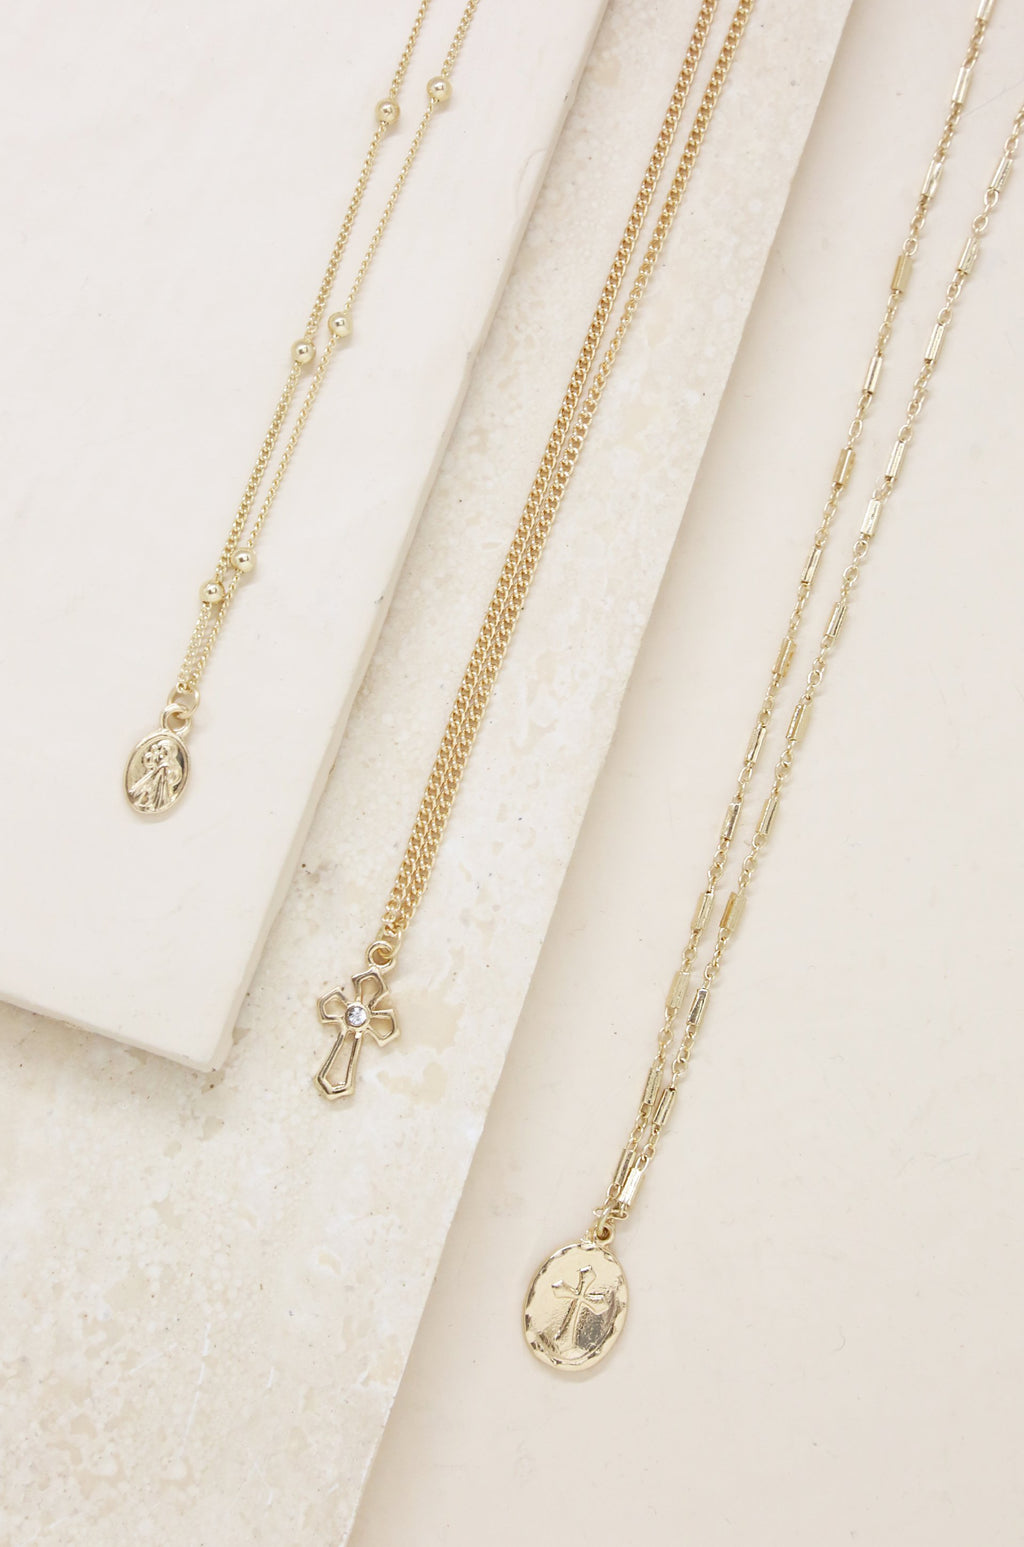 3pc 'Let's Go' Layers Necklace